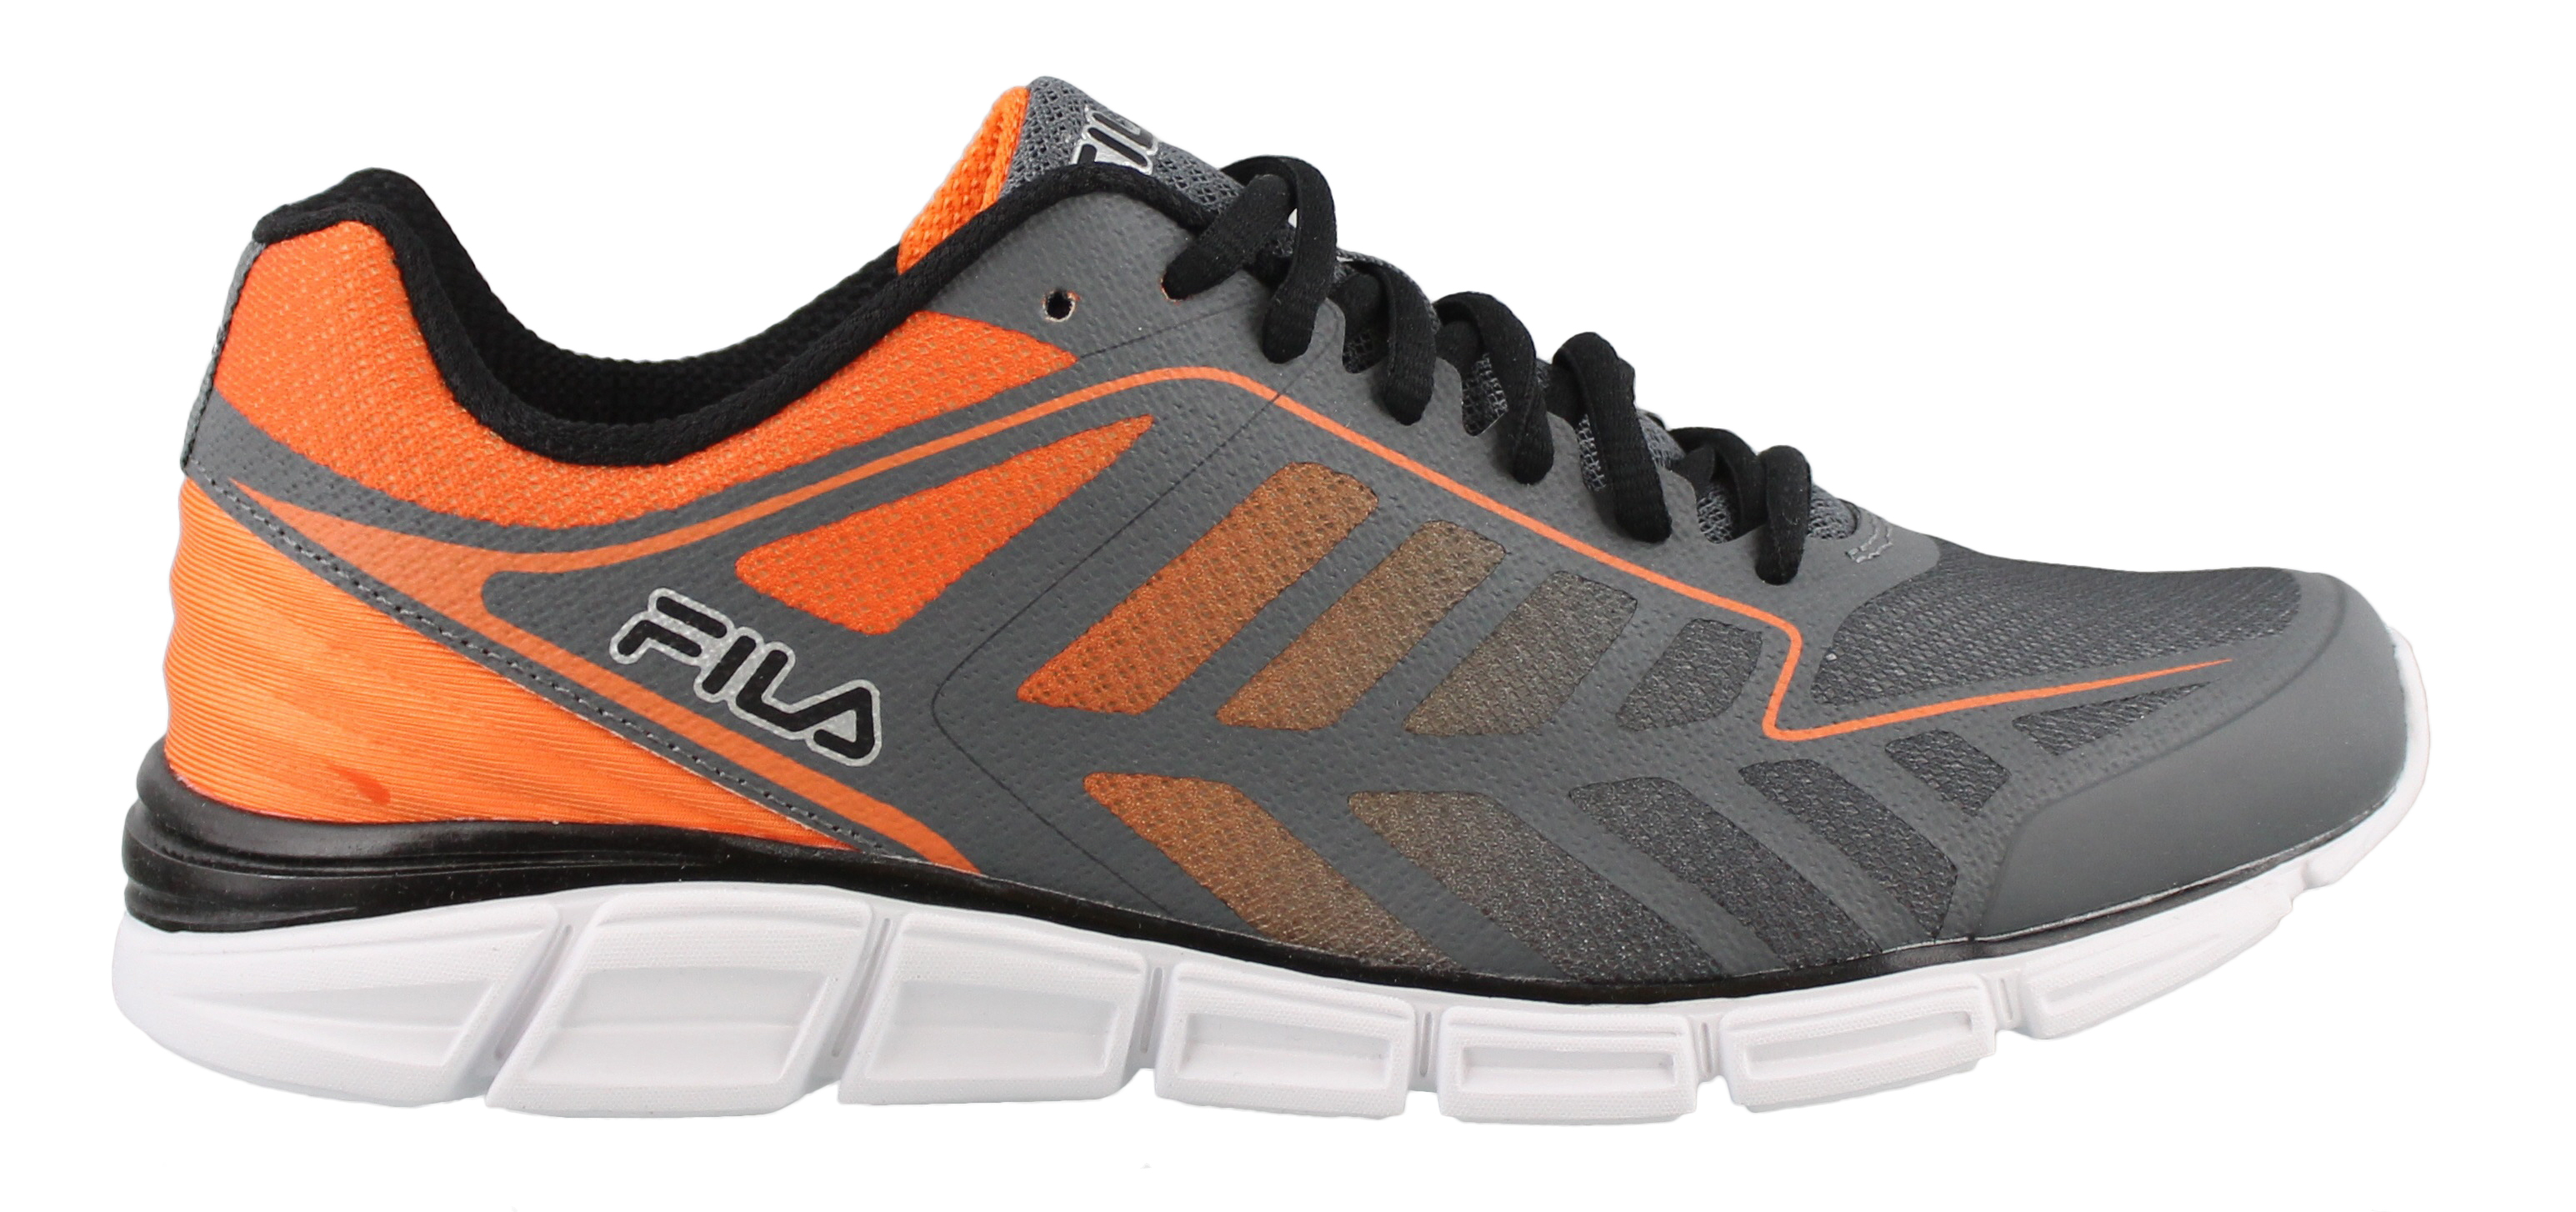 Men's Fila, Memory Finity 2 Running Sneakers by Fila